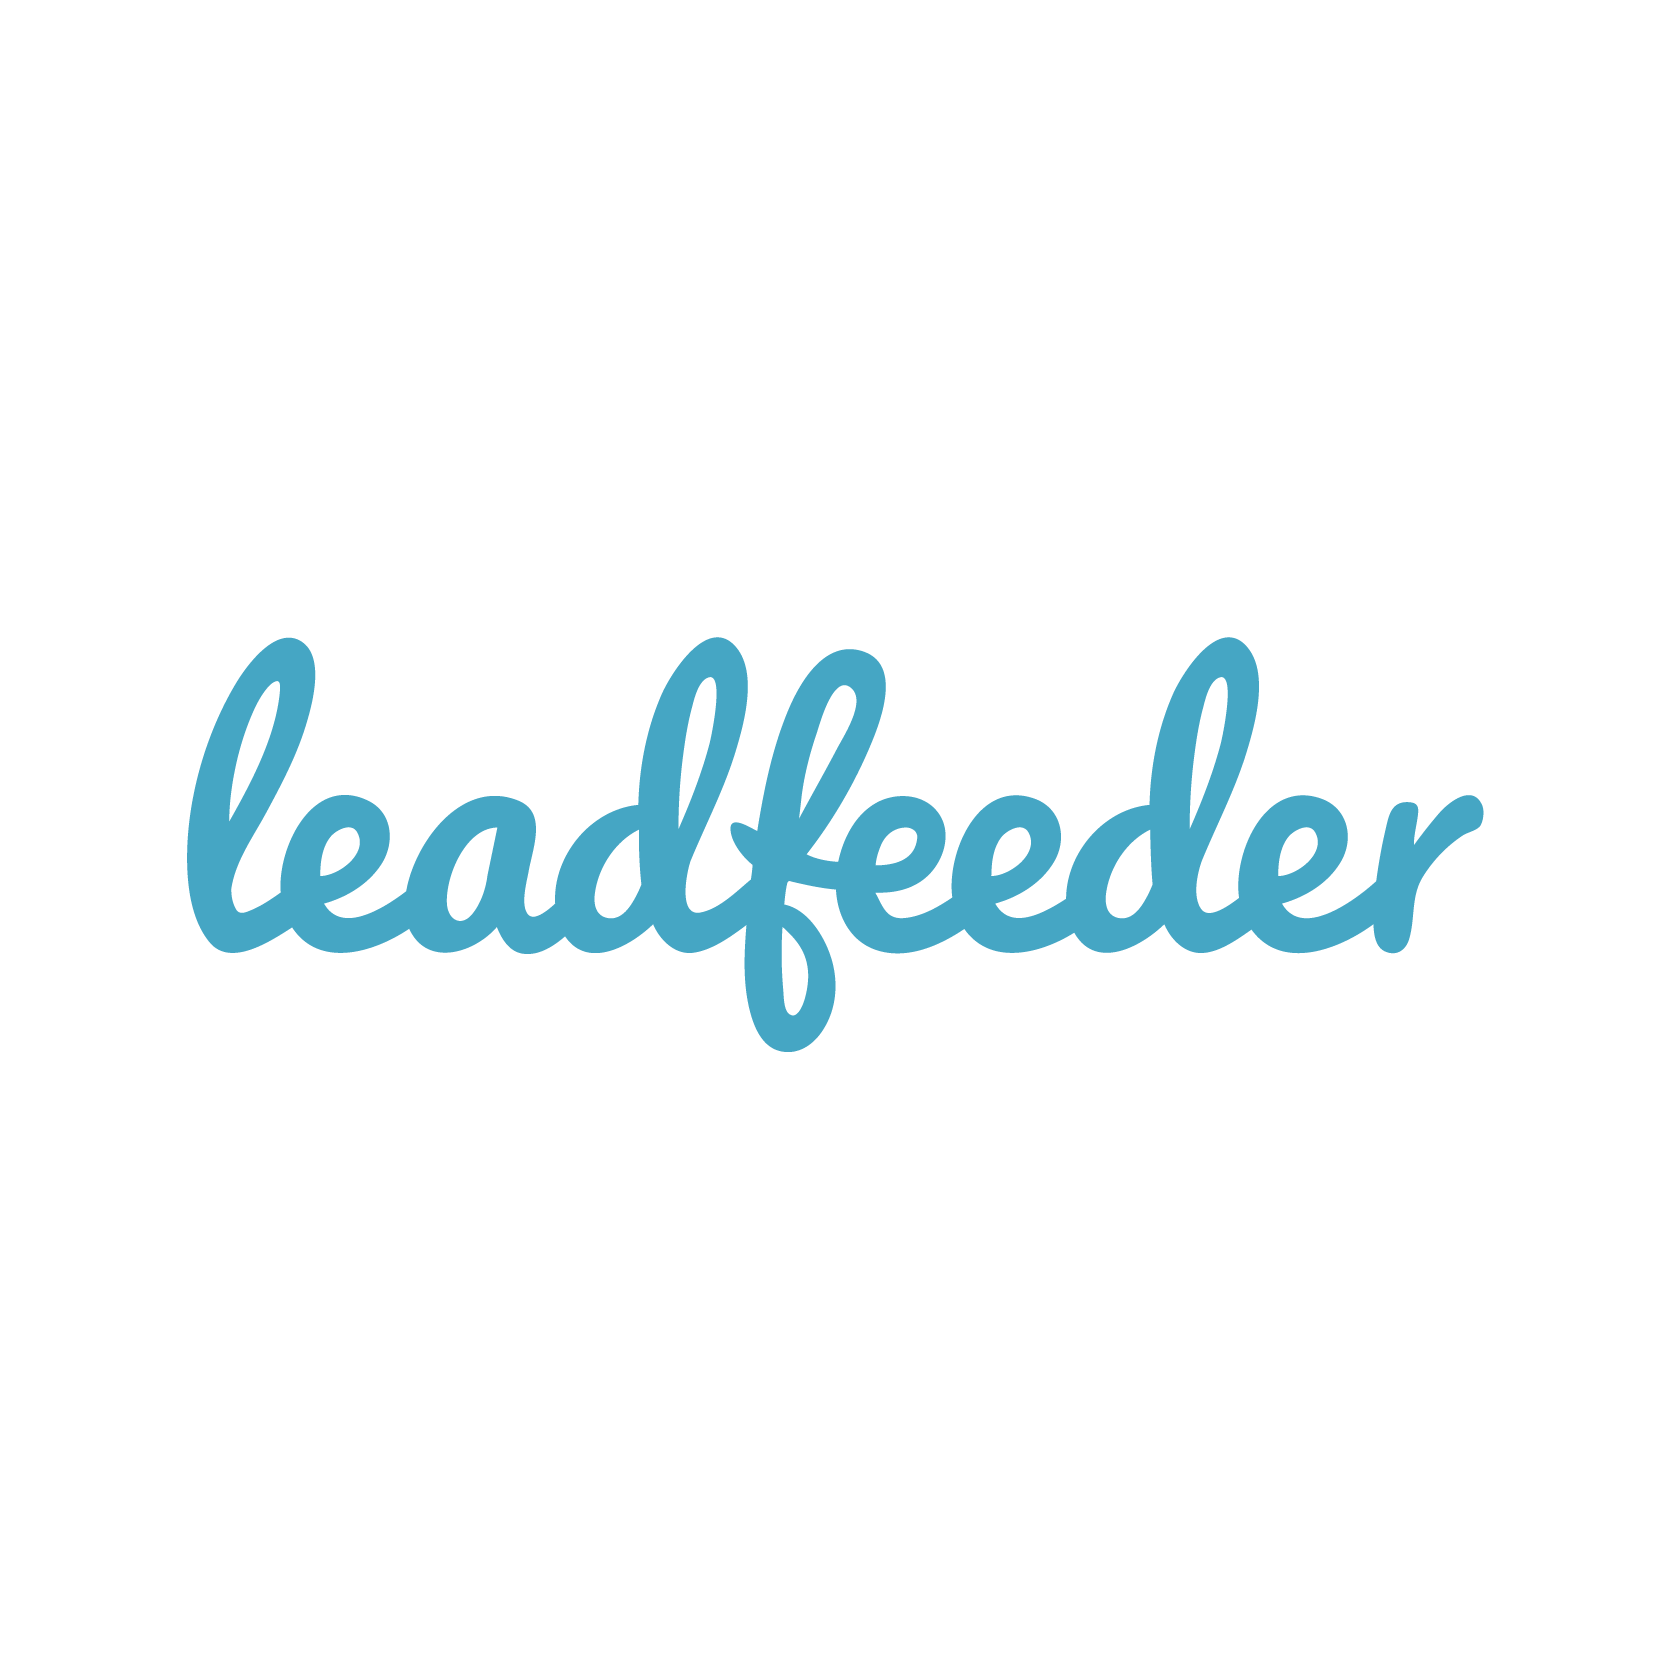 Product Leadfeeder